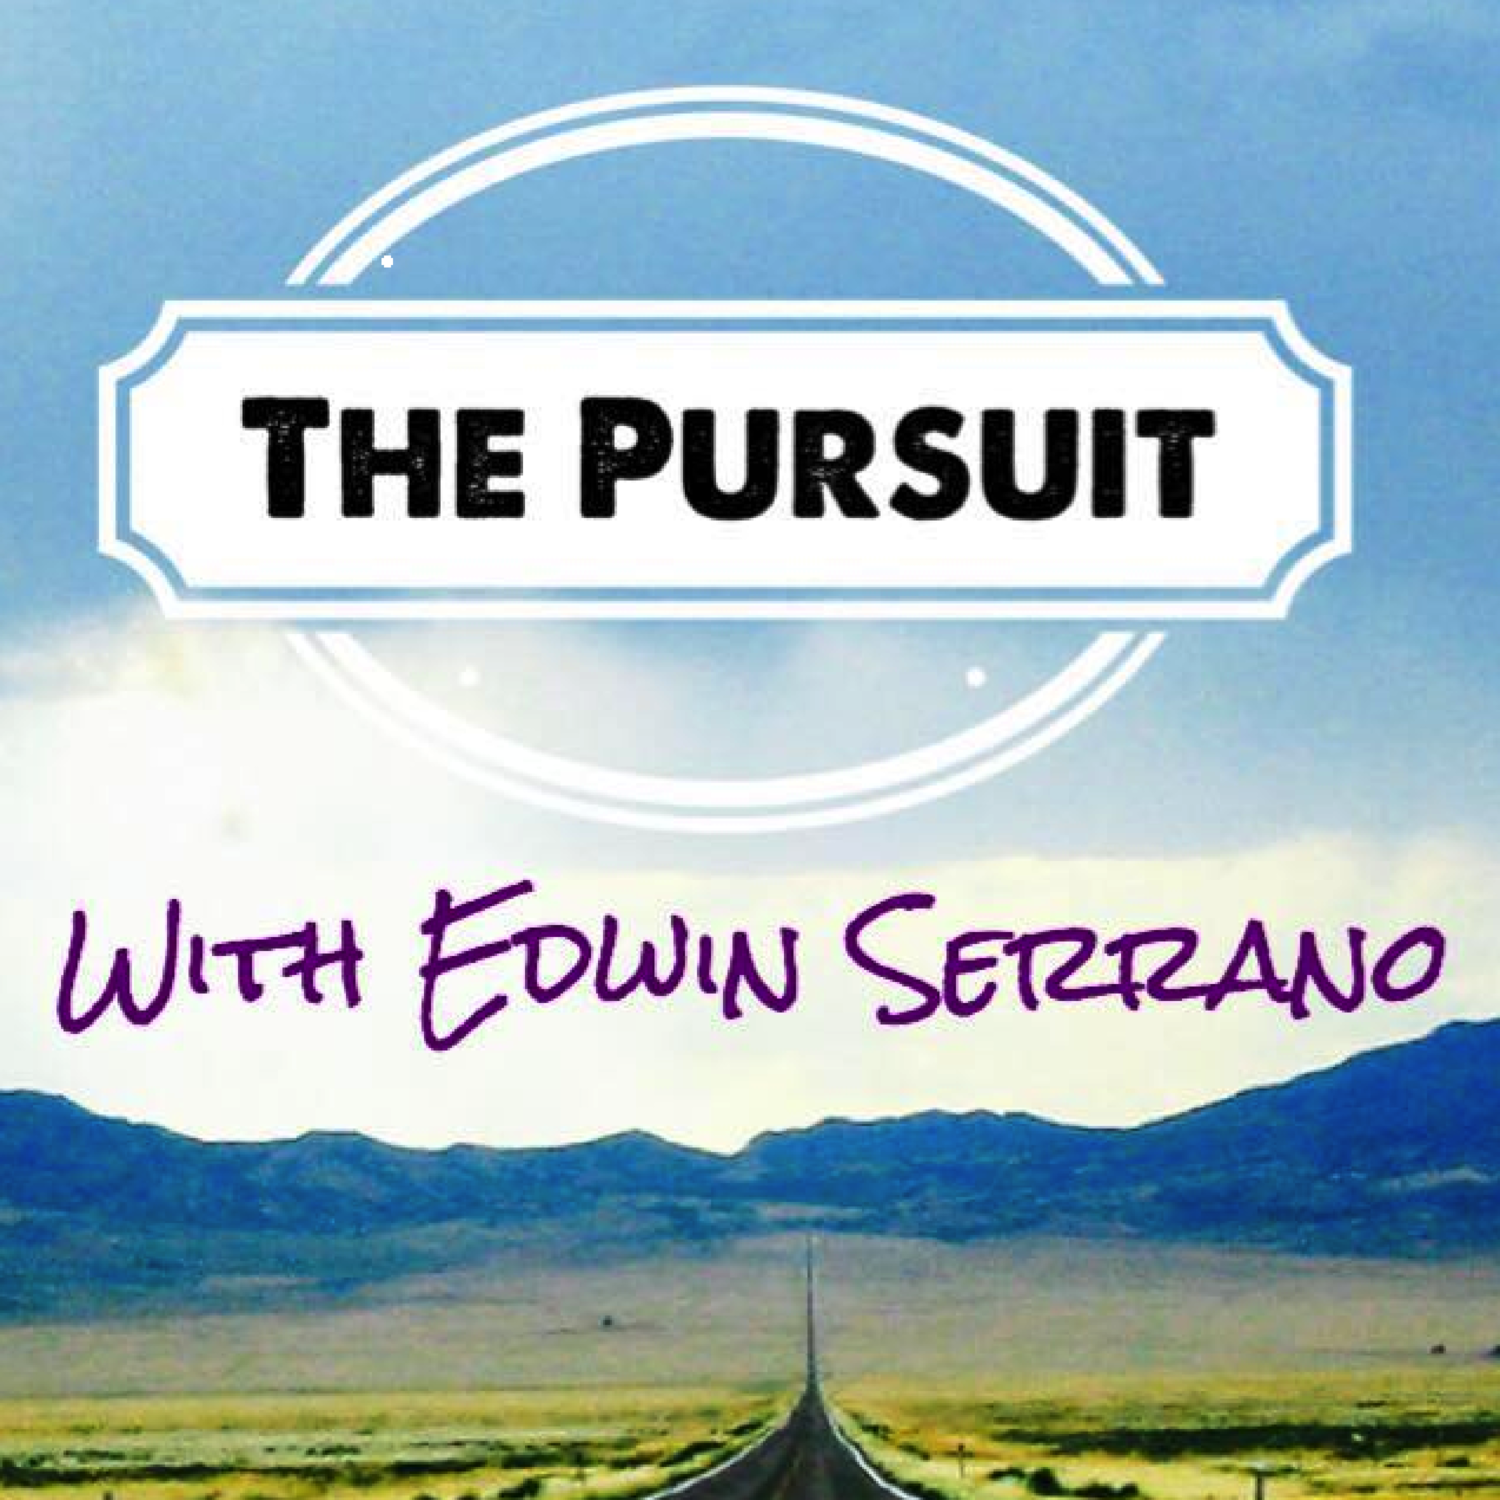 The Pursuit Podcast: Inspiring Stories, Good Vibes - The Pursuit Worldwide